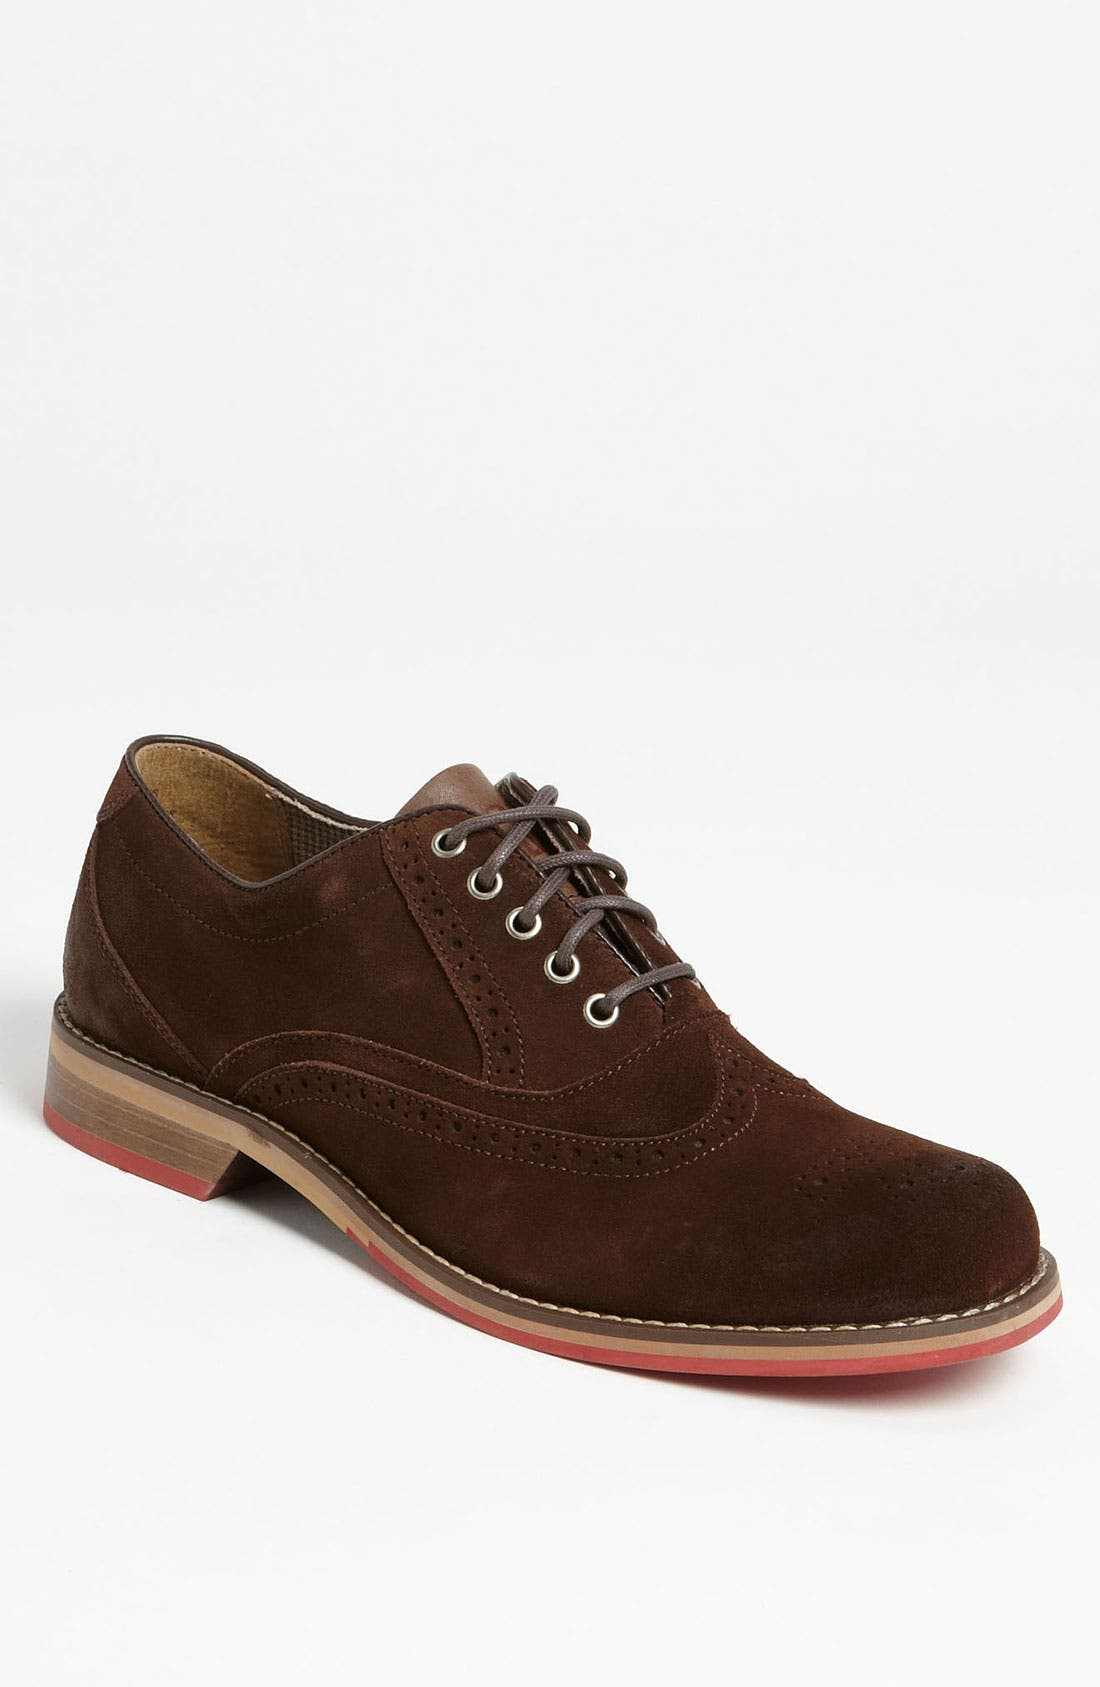 Main Image - WOLVERINE DEX RED SOLE OXFORD